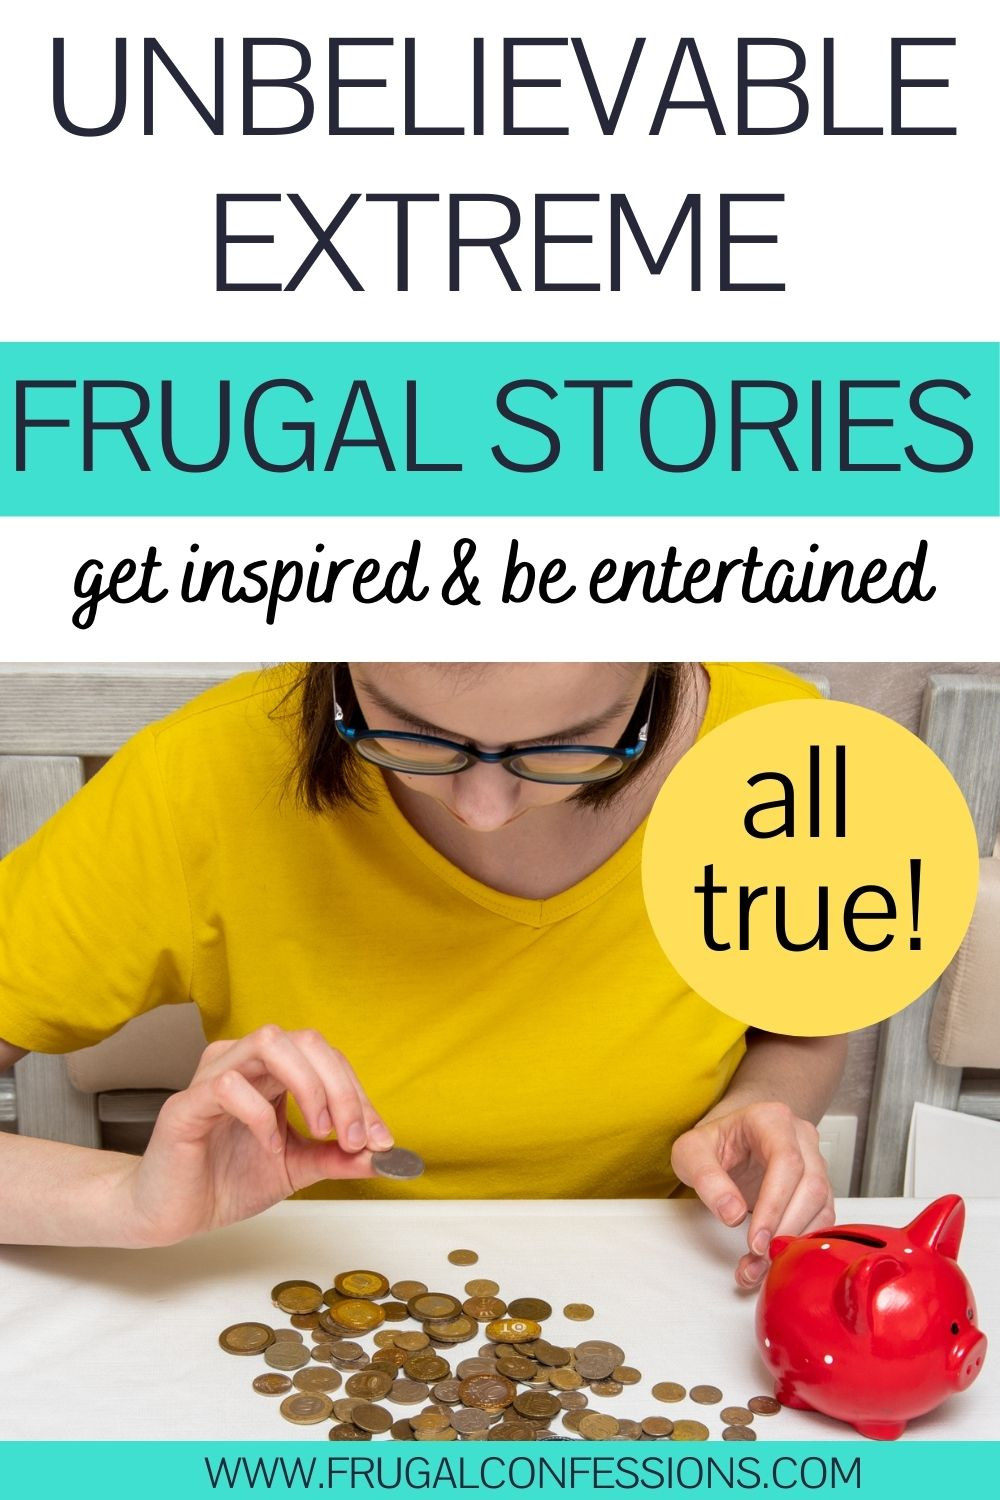 """woman in yellow shirt counting pennies from red piggy bank, text overlay """"unbelievable extreme frugal stories - be inspired and entertained"""""""